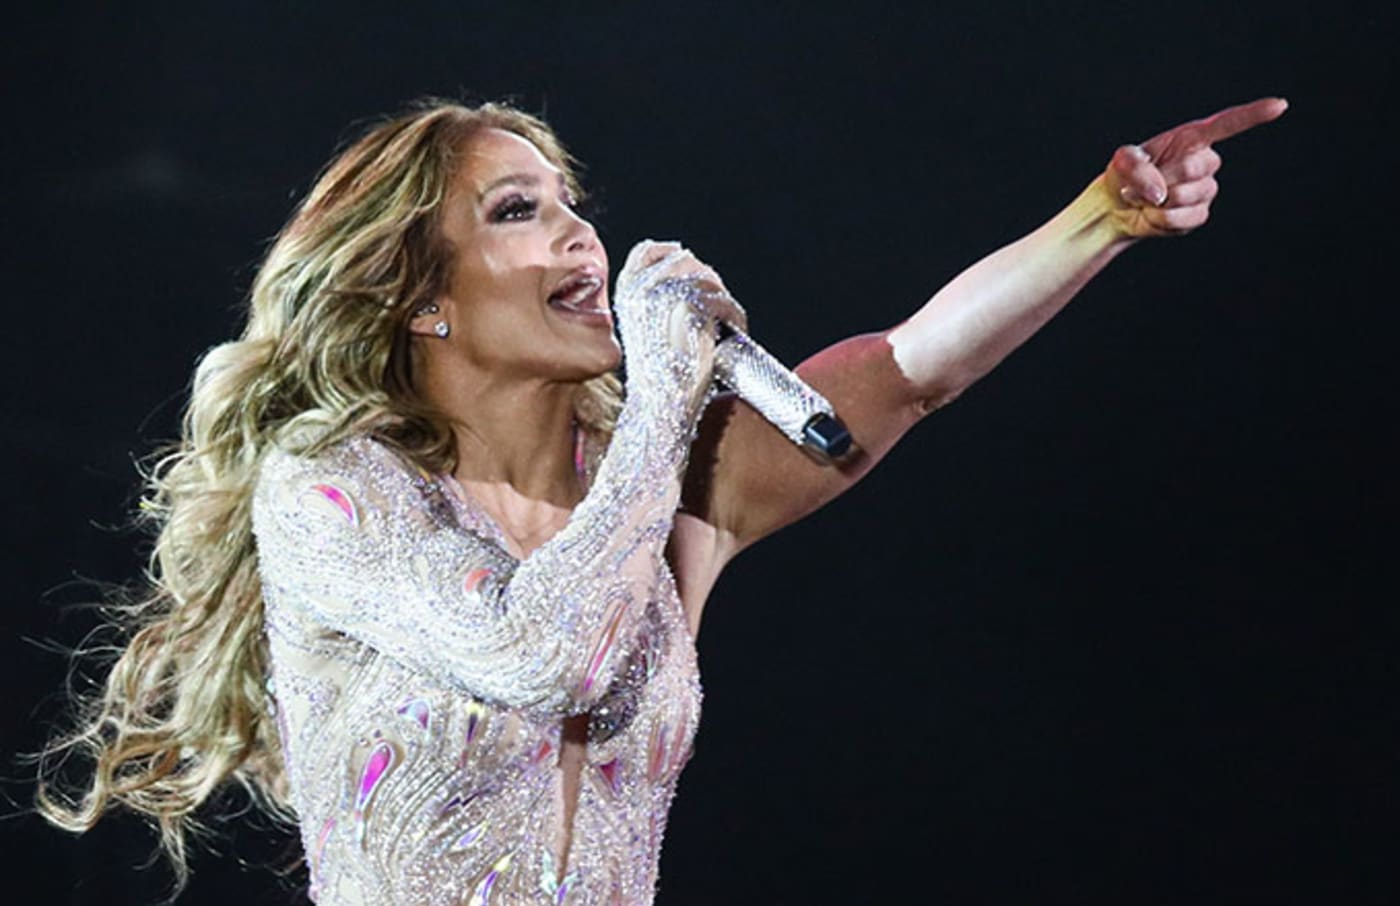 This is a photo of J. Lo.